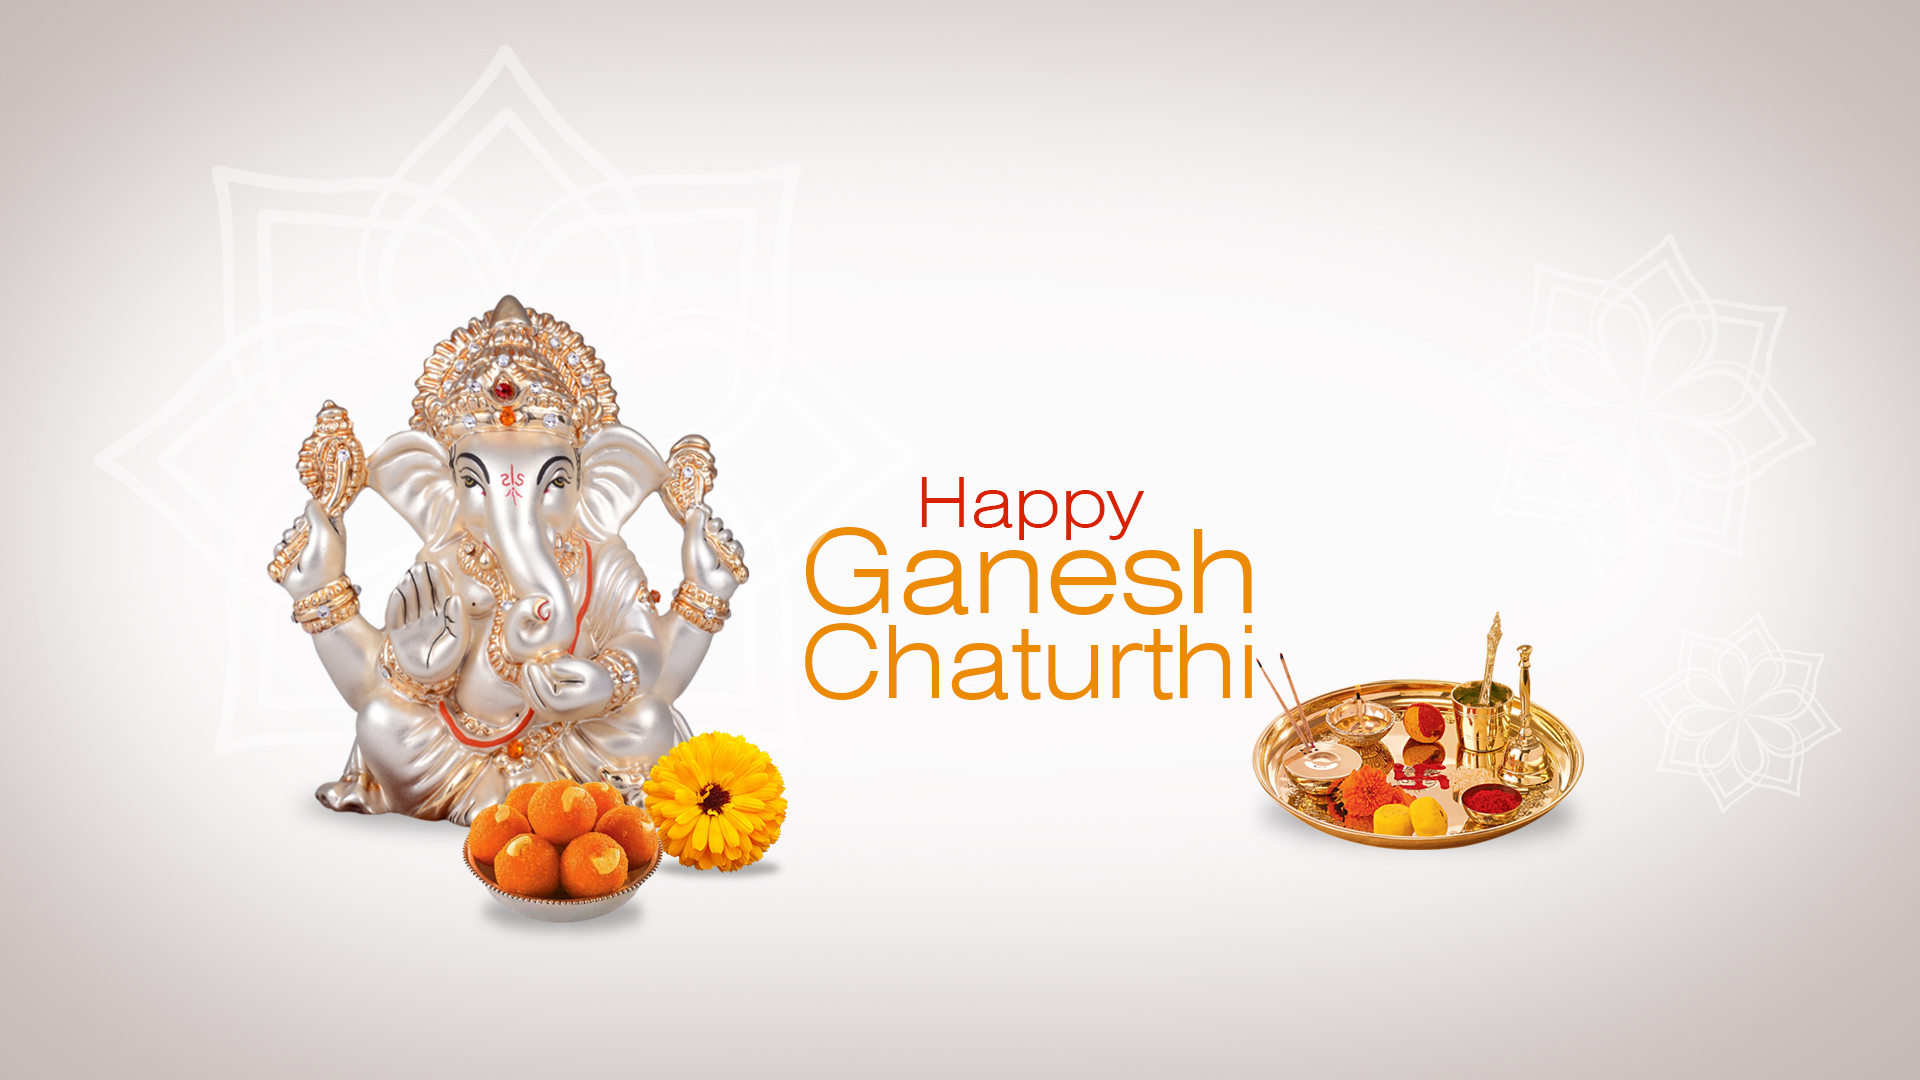 Ganesh chaturthi greeting card happy vinayak chaturthi lord ganesh ganesh chaturthi greeting card download this card m4hsunfo